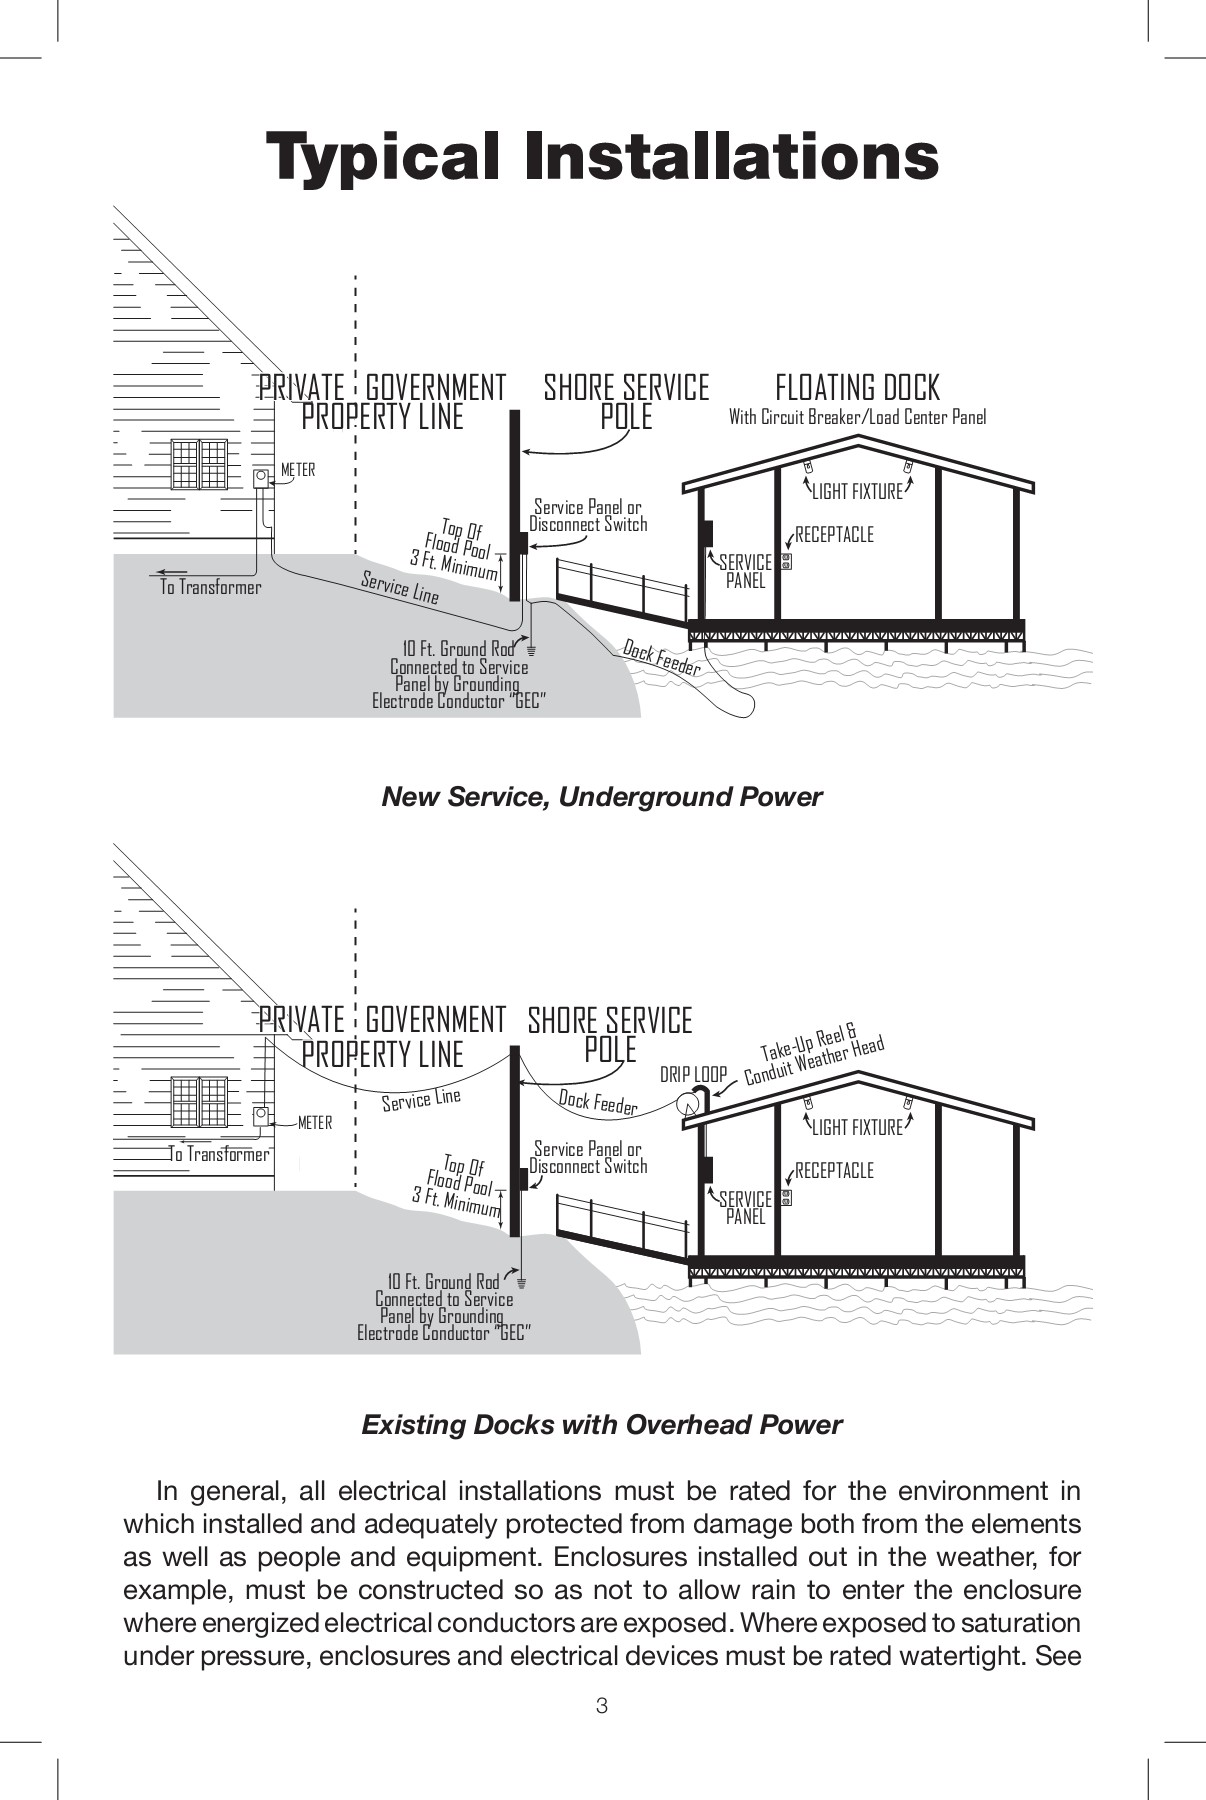 Dock Electrical Systems 03 June 2013 Pages 1 - 12 - Text Version